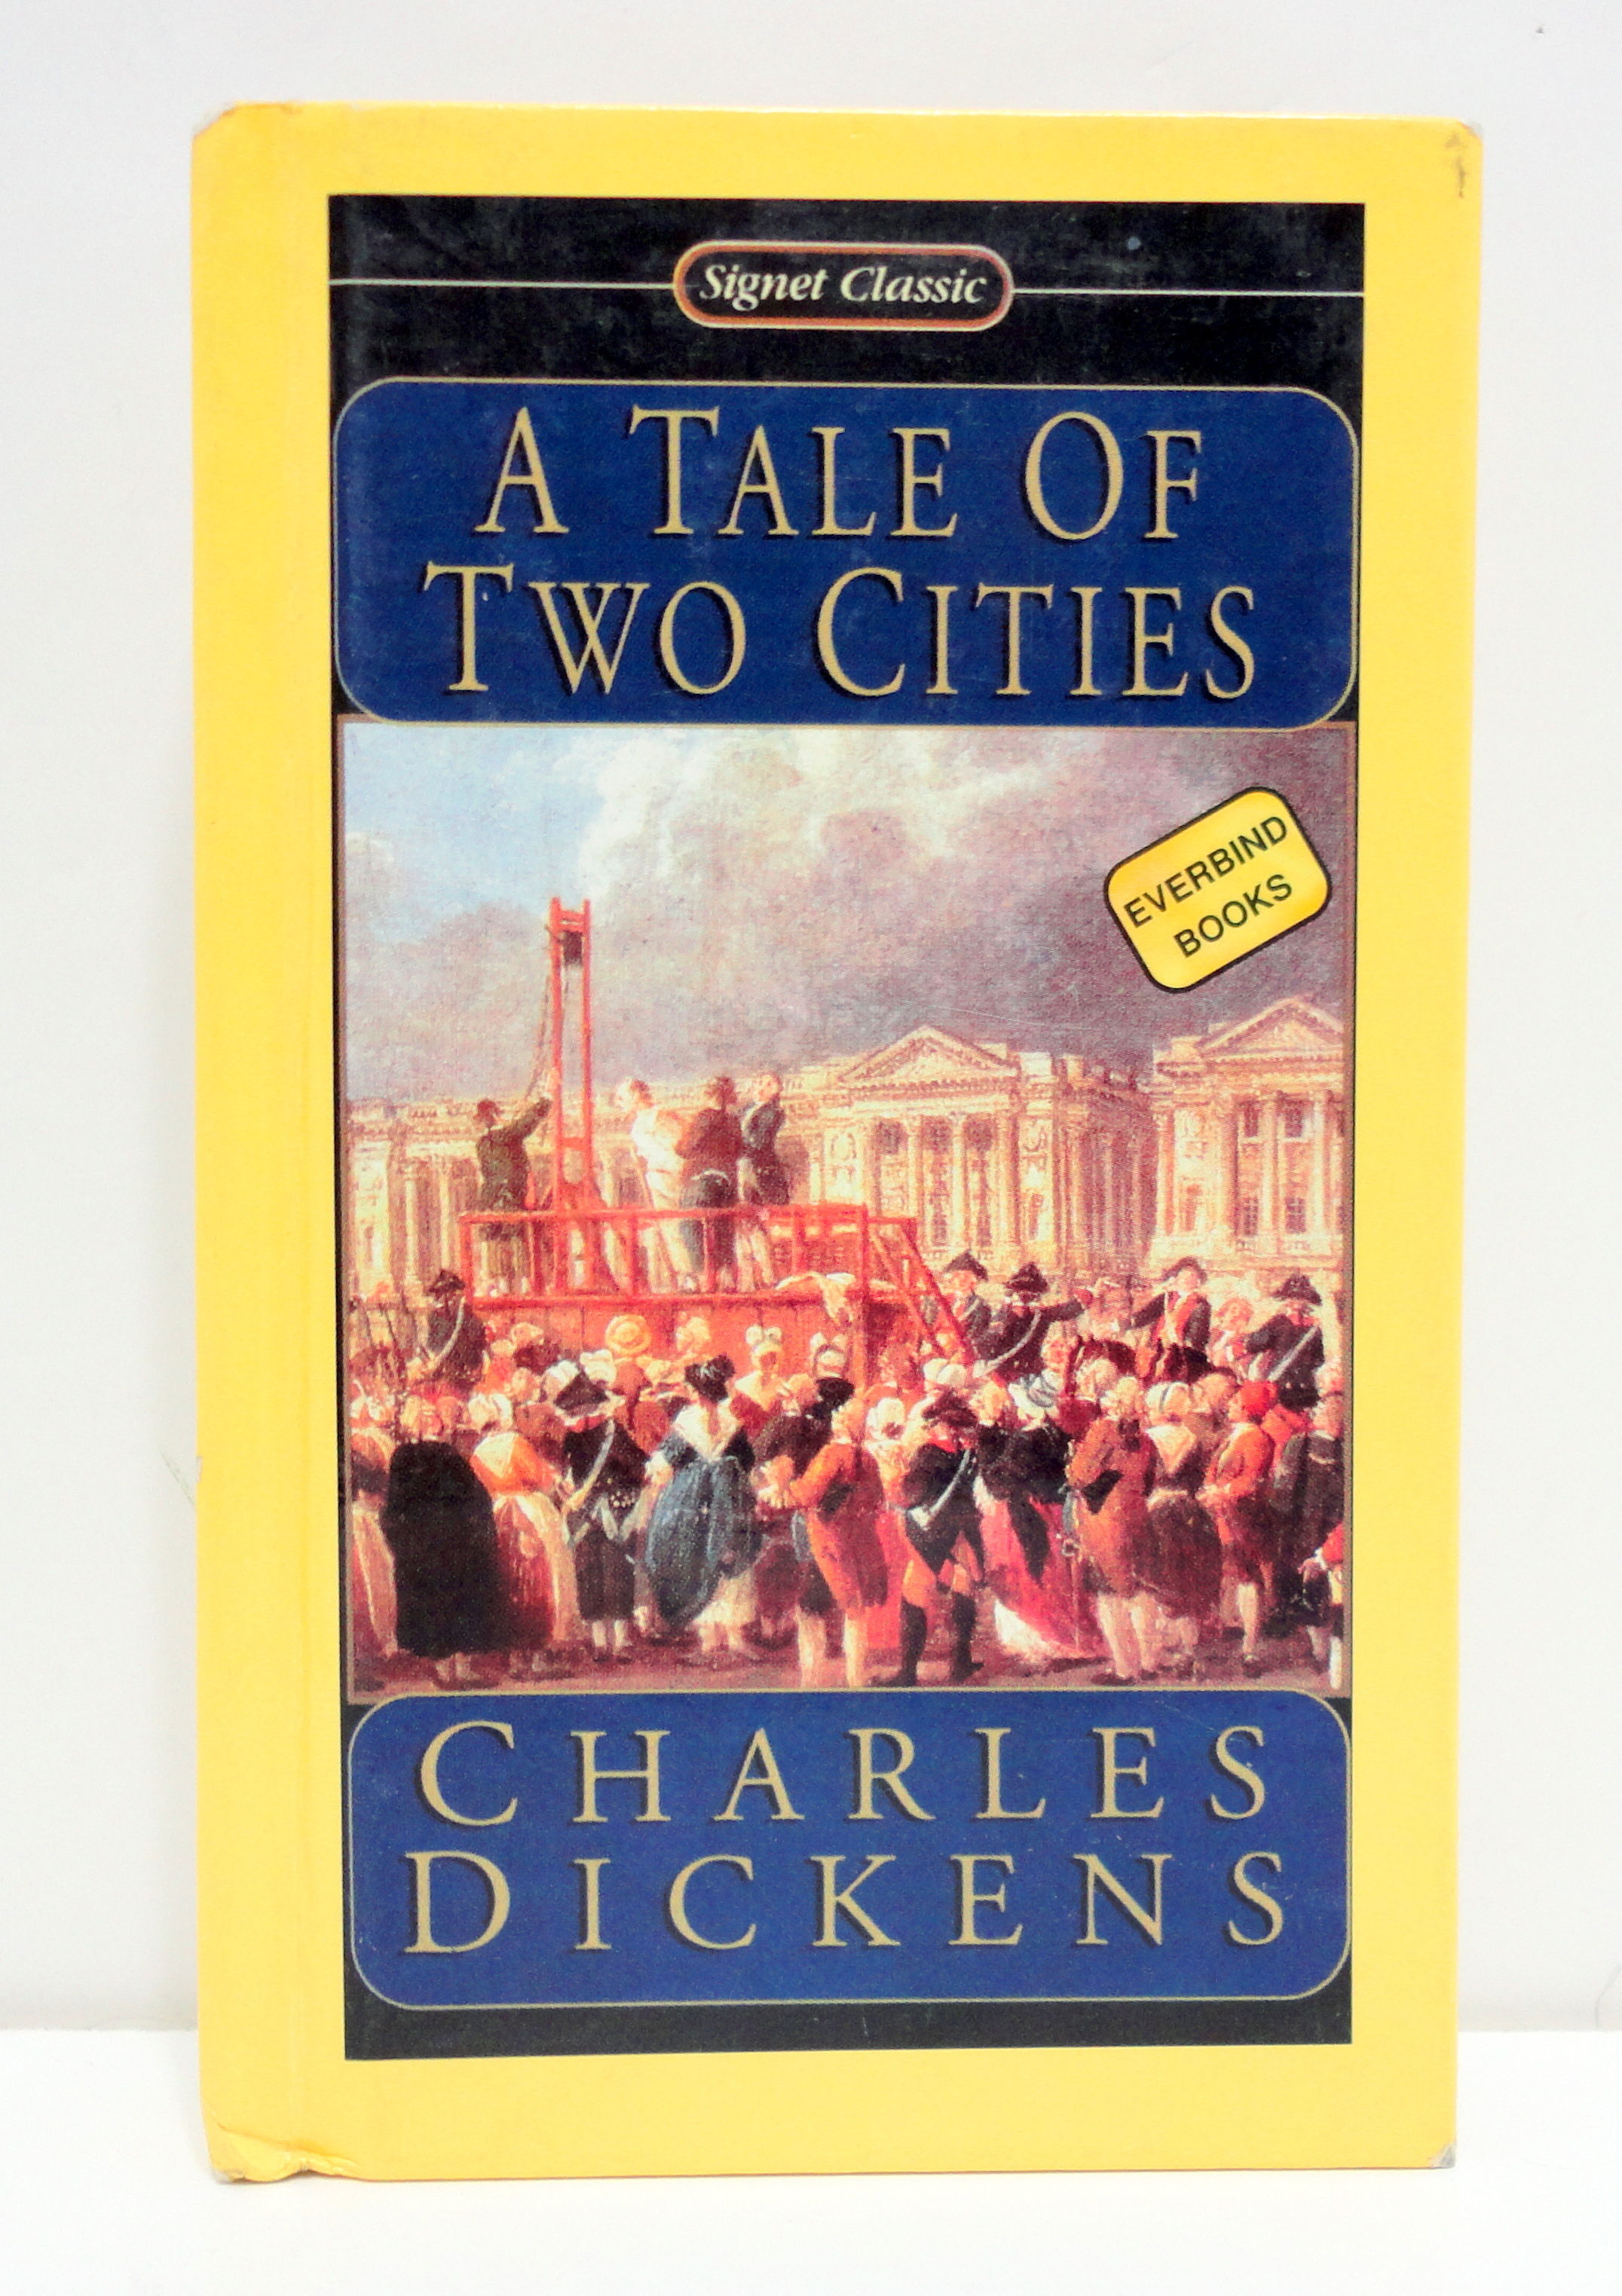 an analysis of the french revolution in a tale of two cities by charles dickens A tale of two cities study guide contains a biography of charles dickens,   questions, major themes, characters, and a full summary and analysis  dickens  relied heavily on thomas carlyle's the french revolution when.